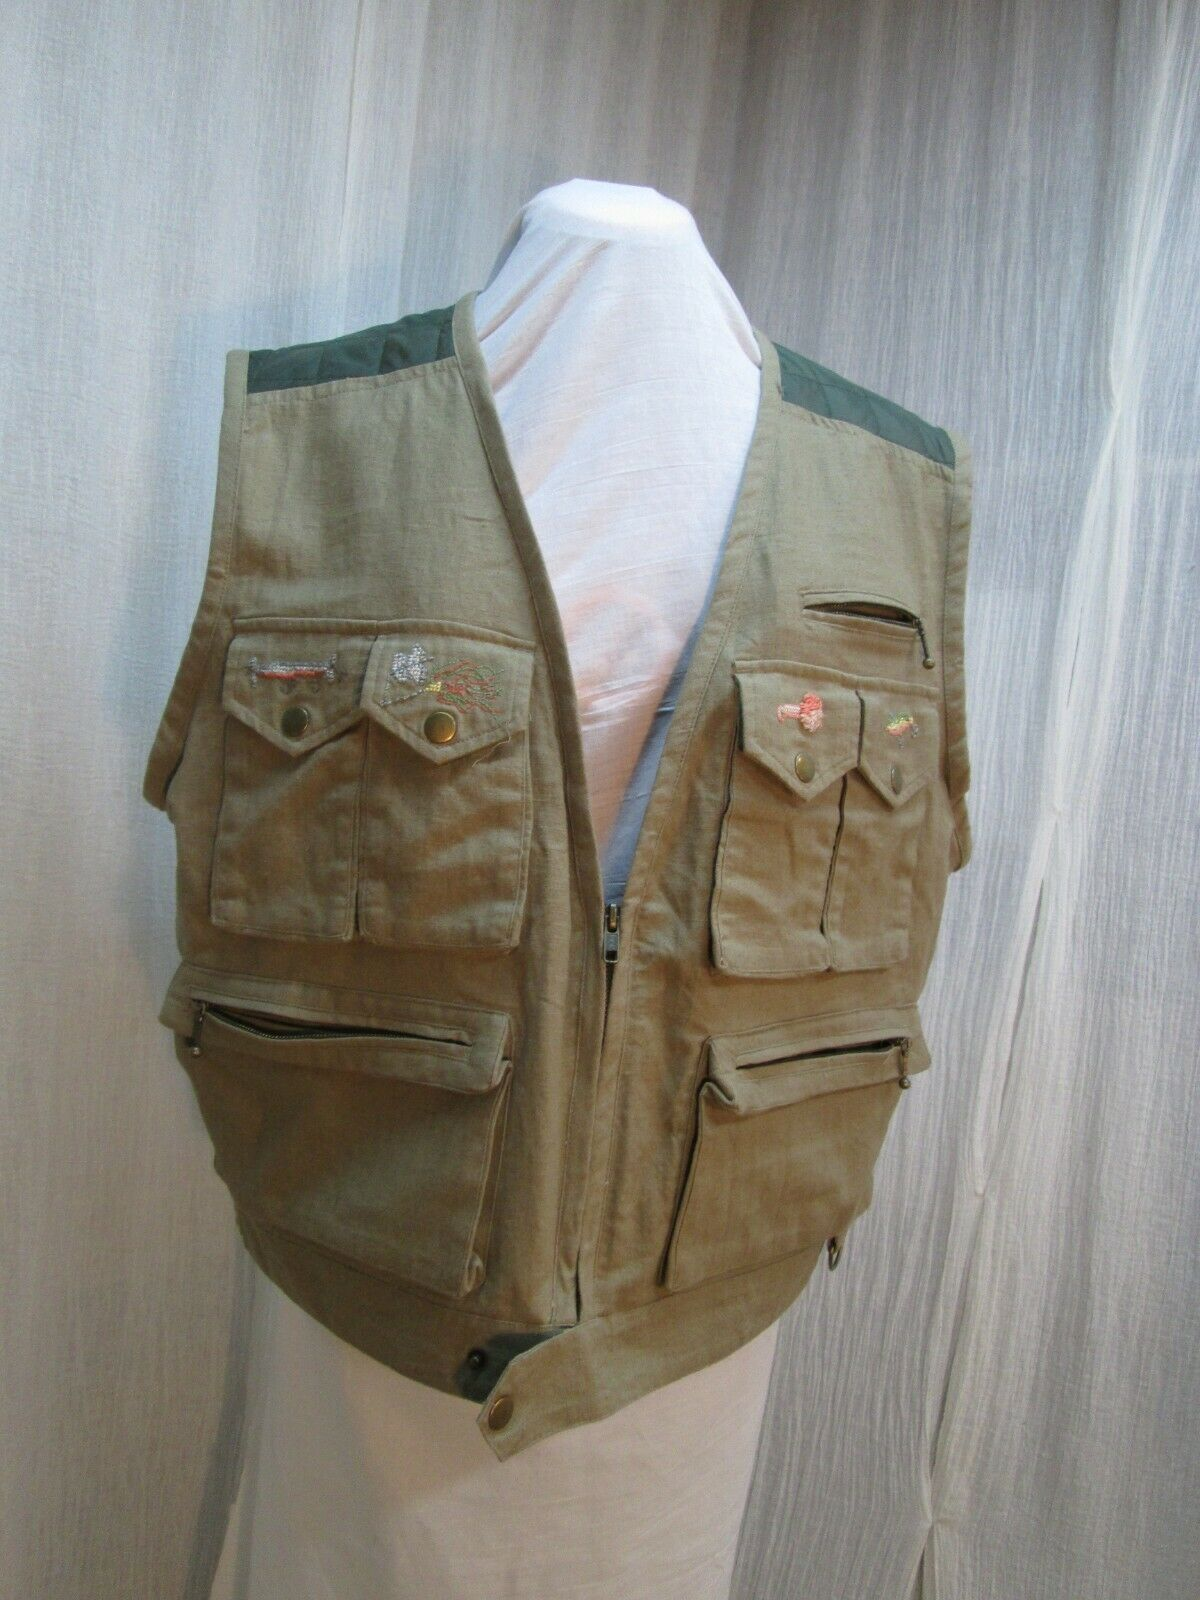 Fly Fishing  Vest Embroidered Flies 44 Chest Linen Cotton Quilted New Travel  v42  outlet online store